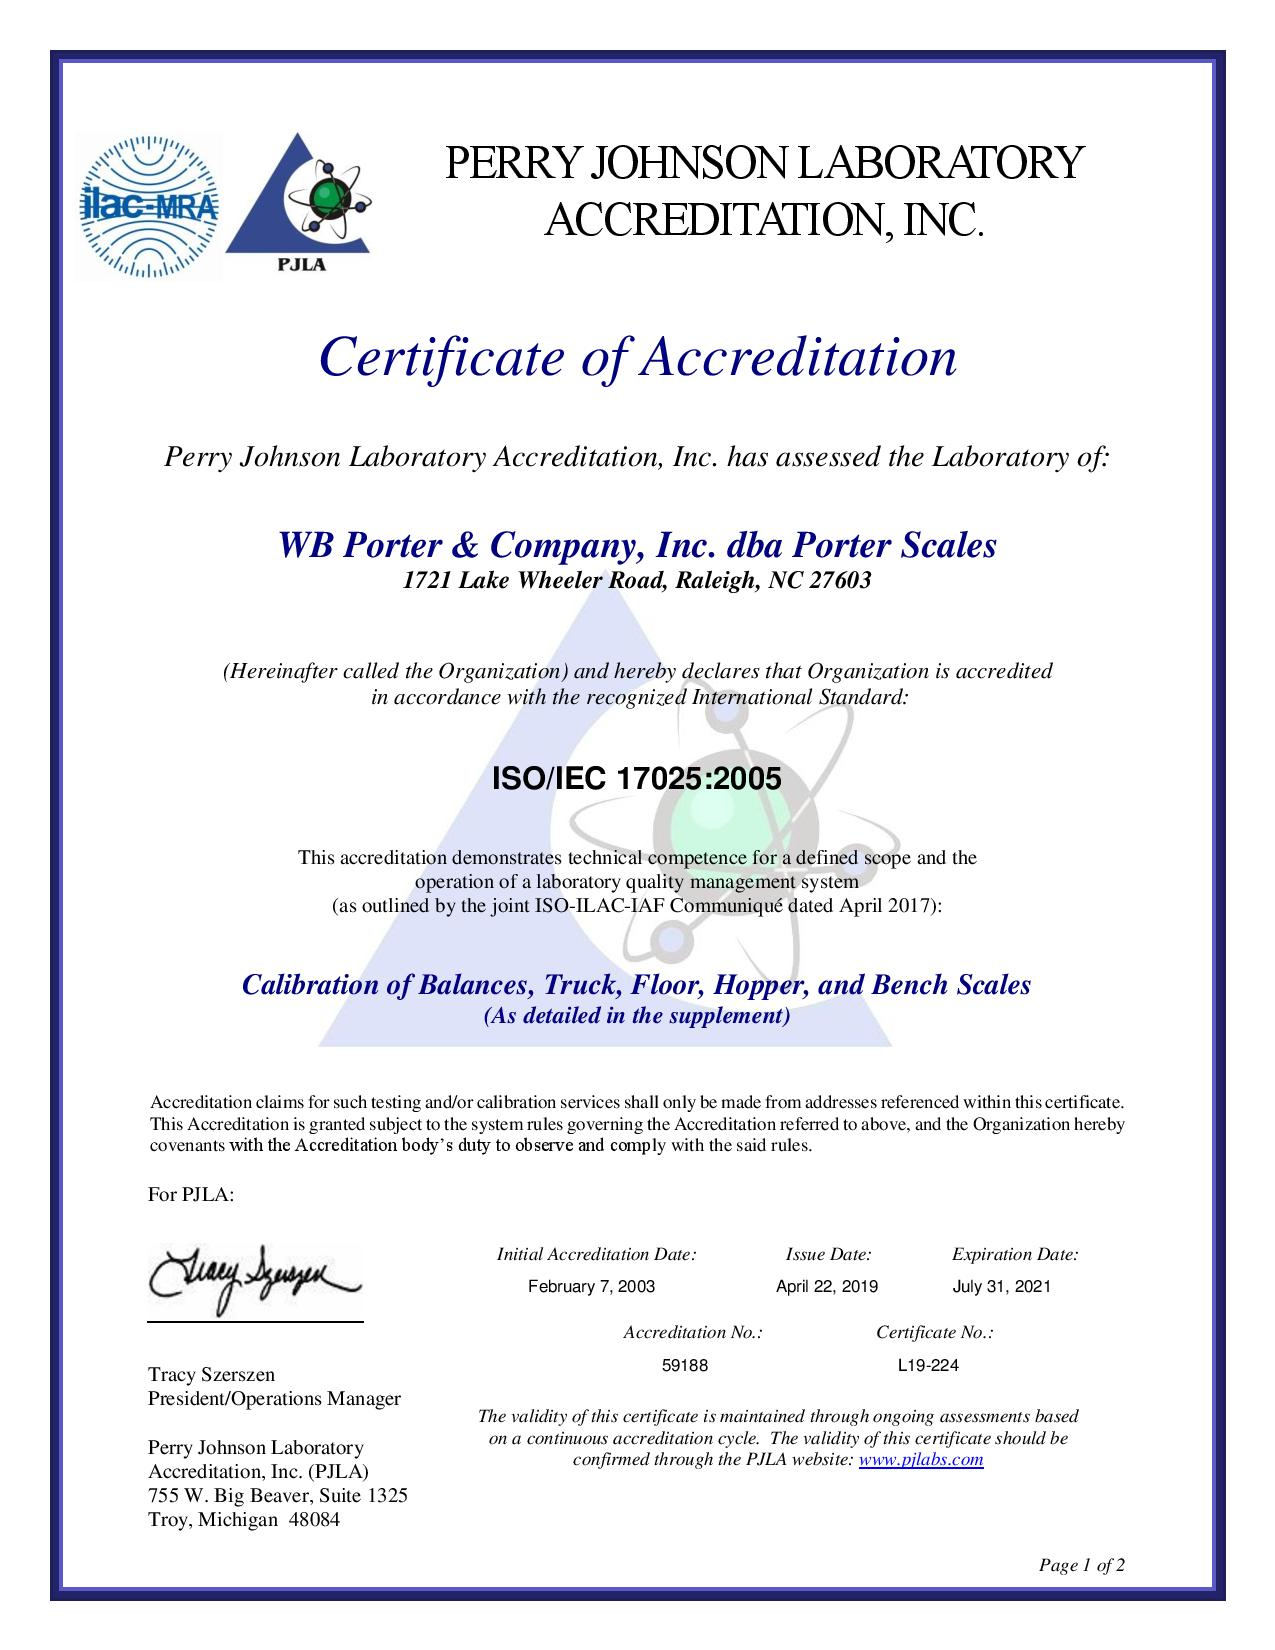 PJL Certificate of Accreditation 2019 - 2021